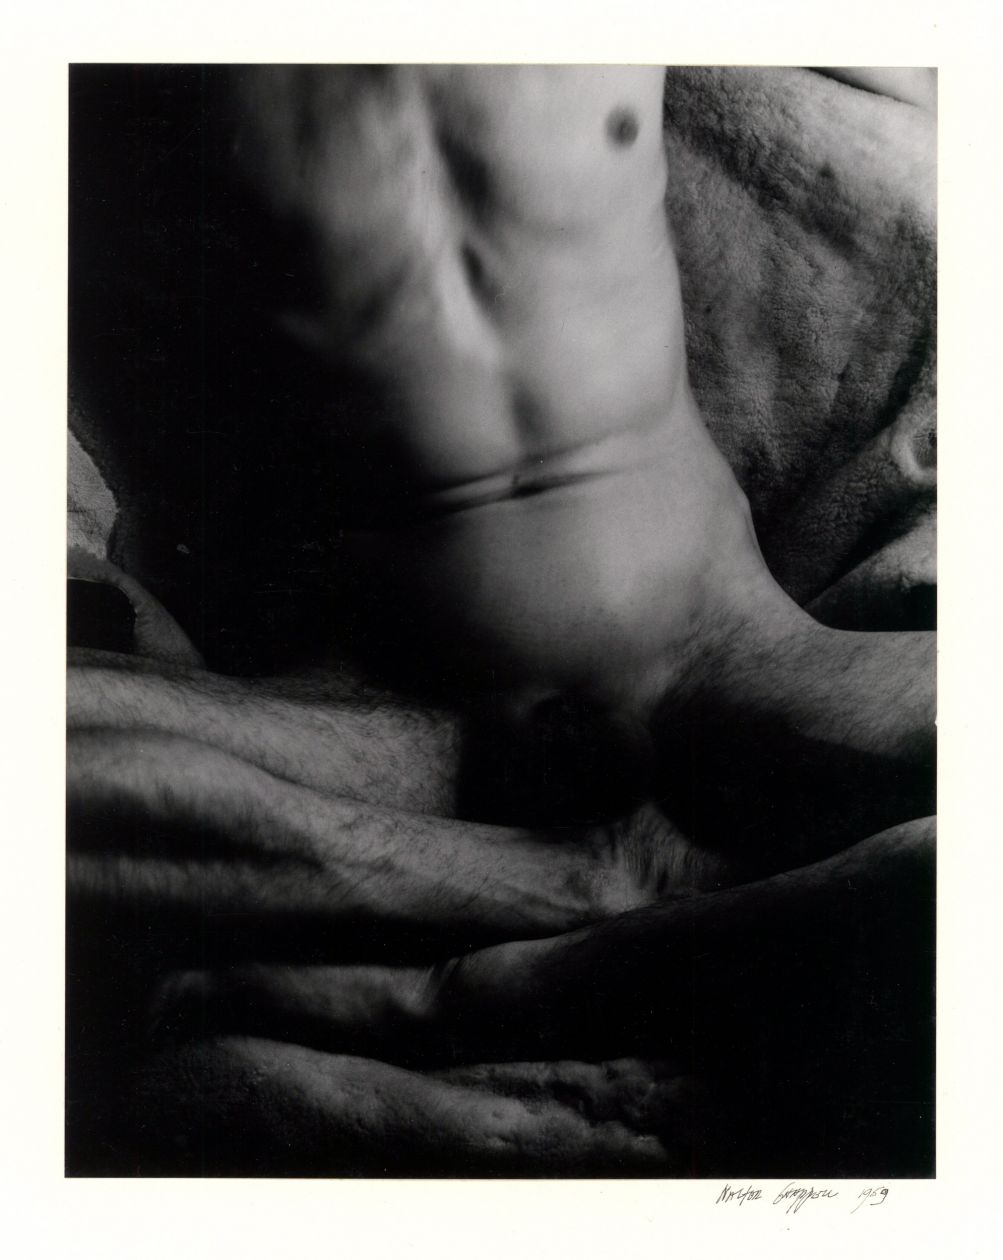 Untitled self-portrait [Male nude sitting] (1959) by Walter Chappell